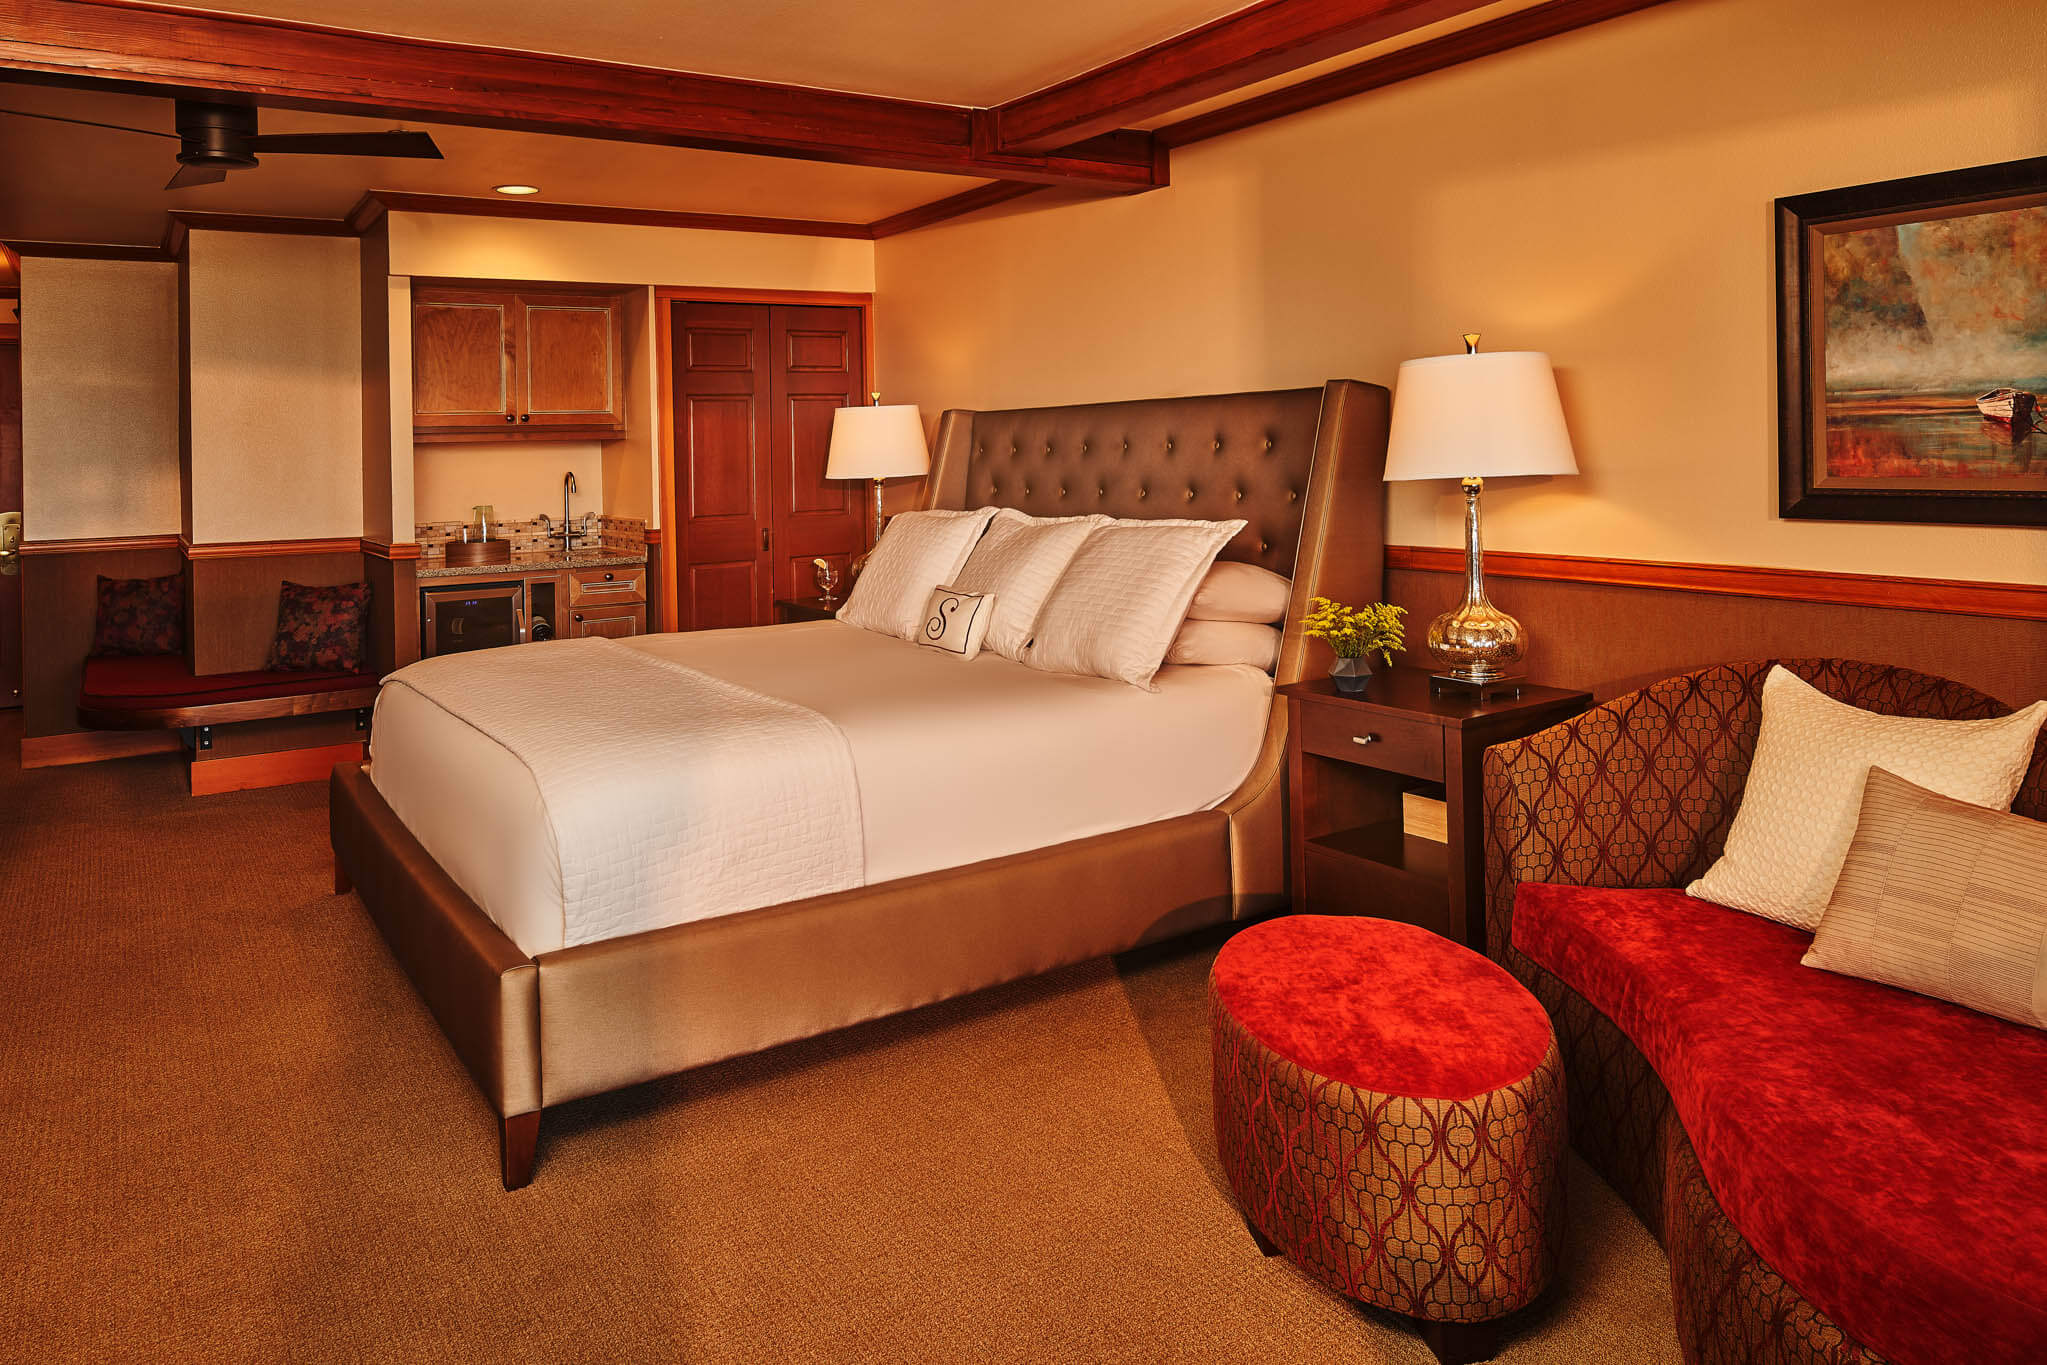 Amazing room details to make your stay feel like home